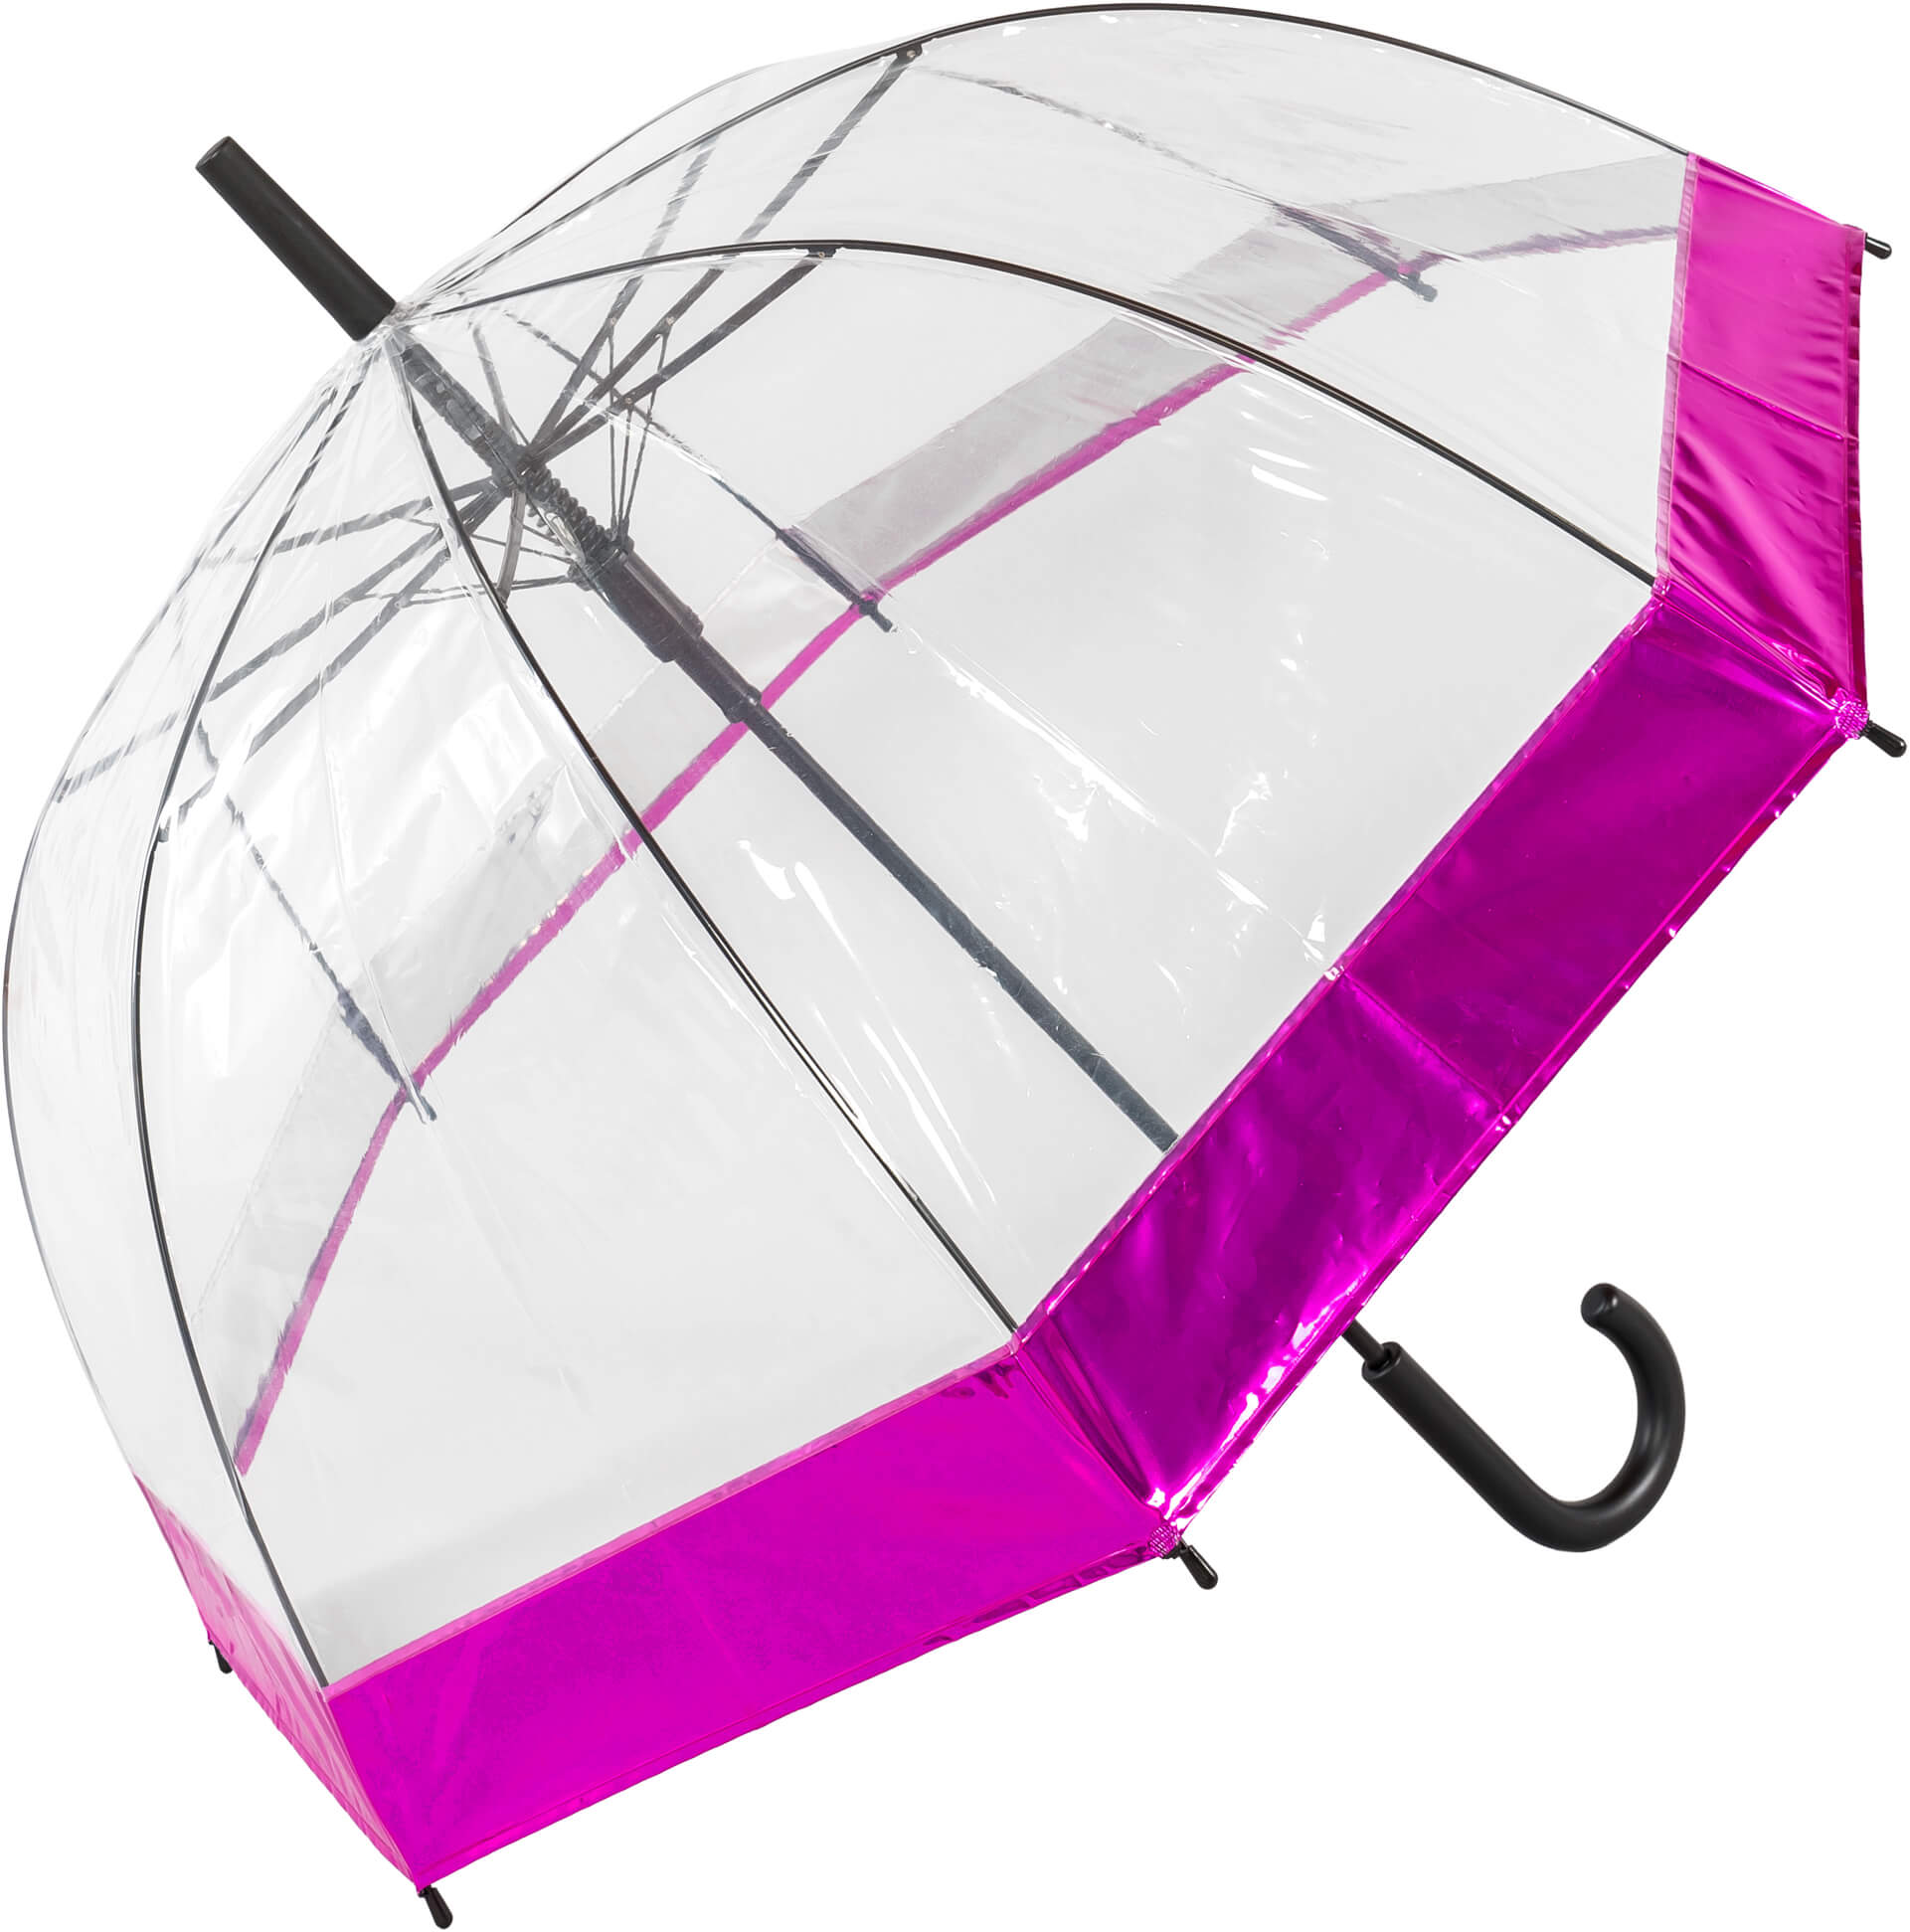 Click to view Clear Dome Umbrella with Metallic Pink Border (18020)